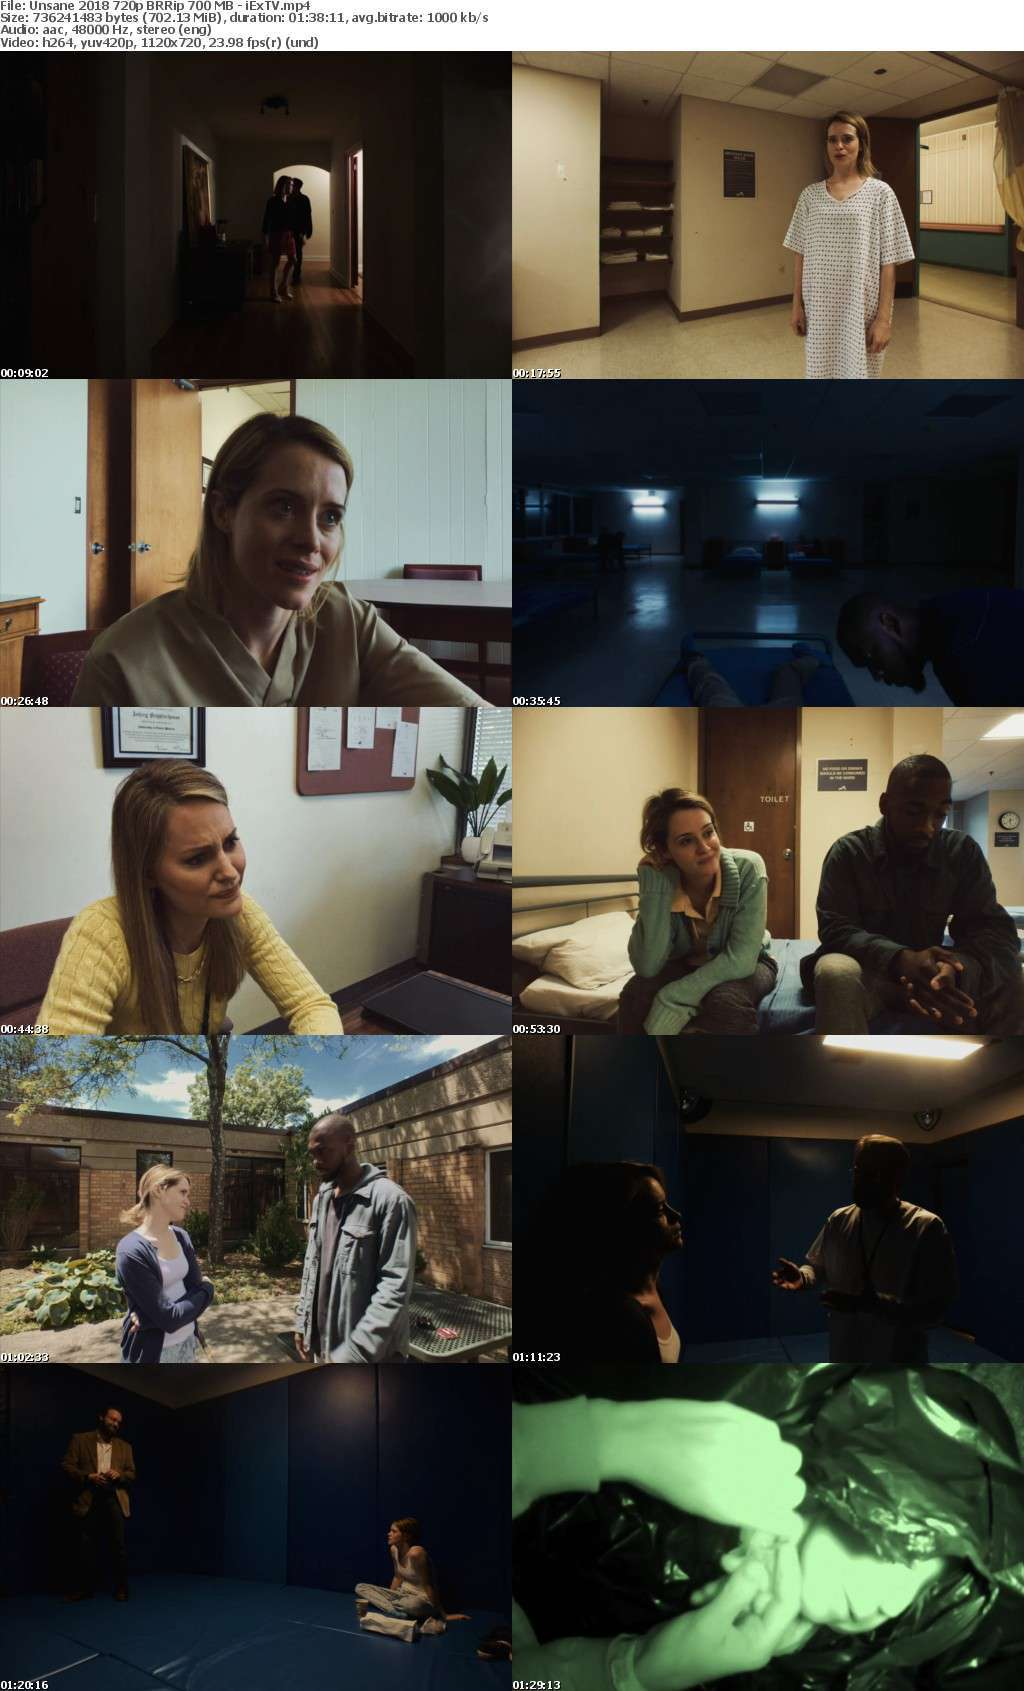 Unsane (2018) 720p BRRip 700 MB - iExTV